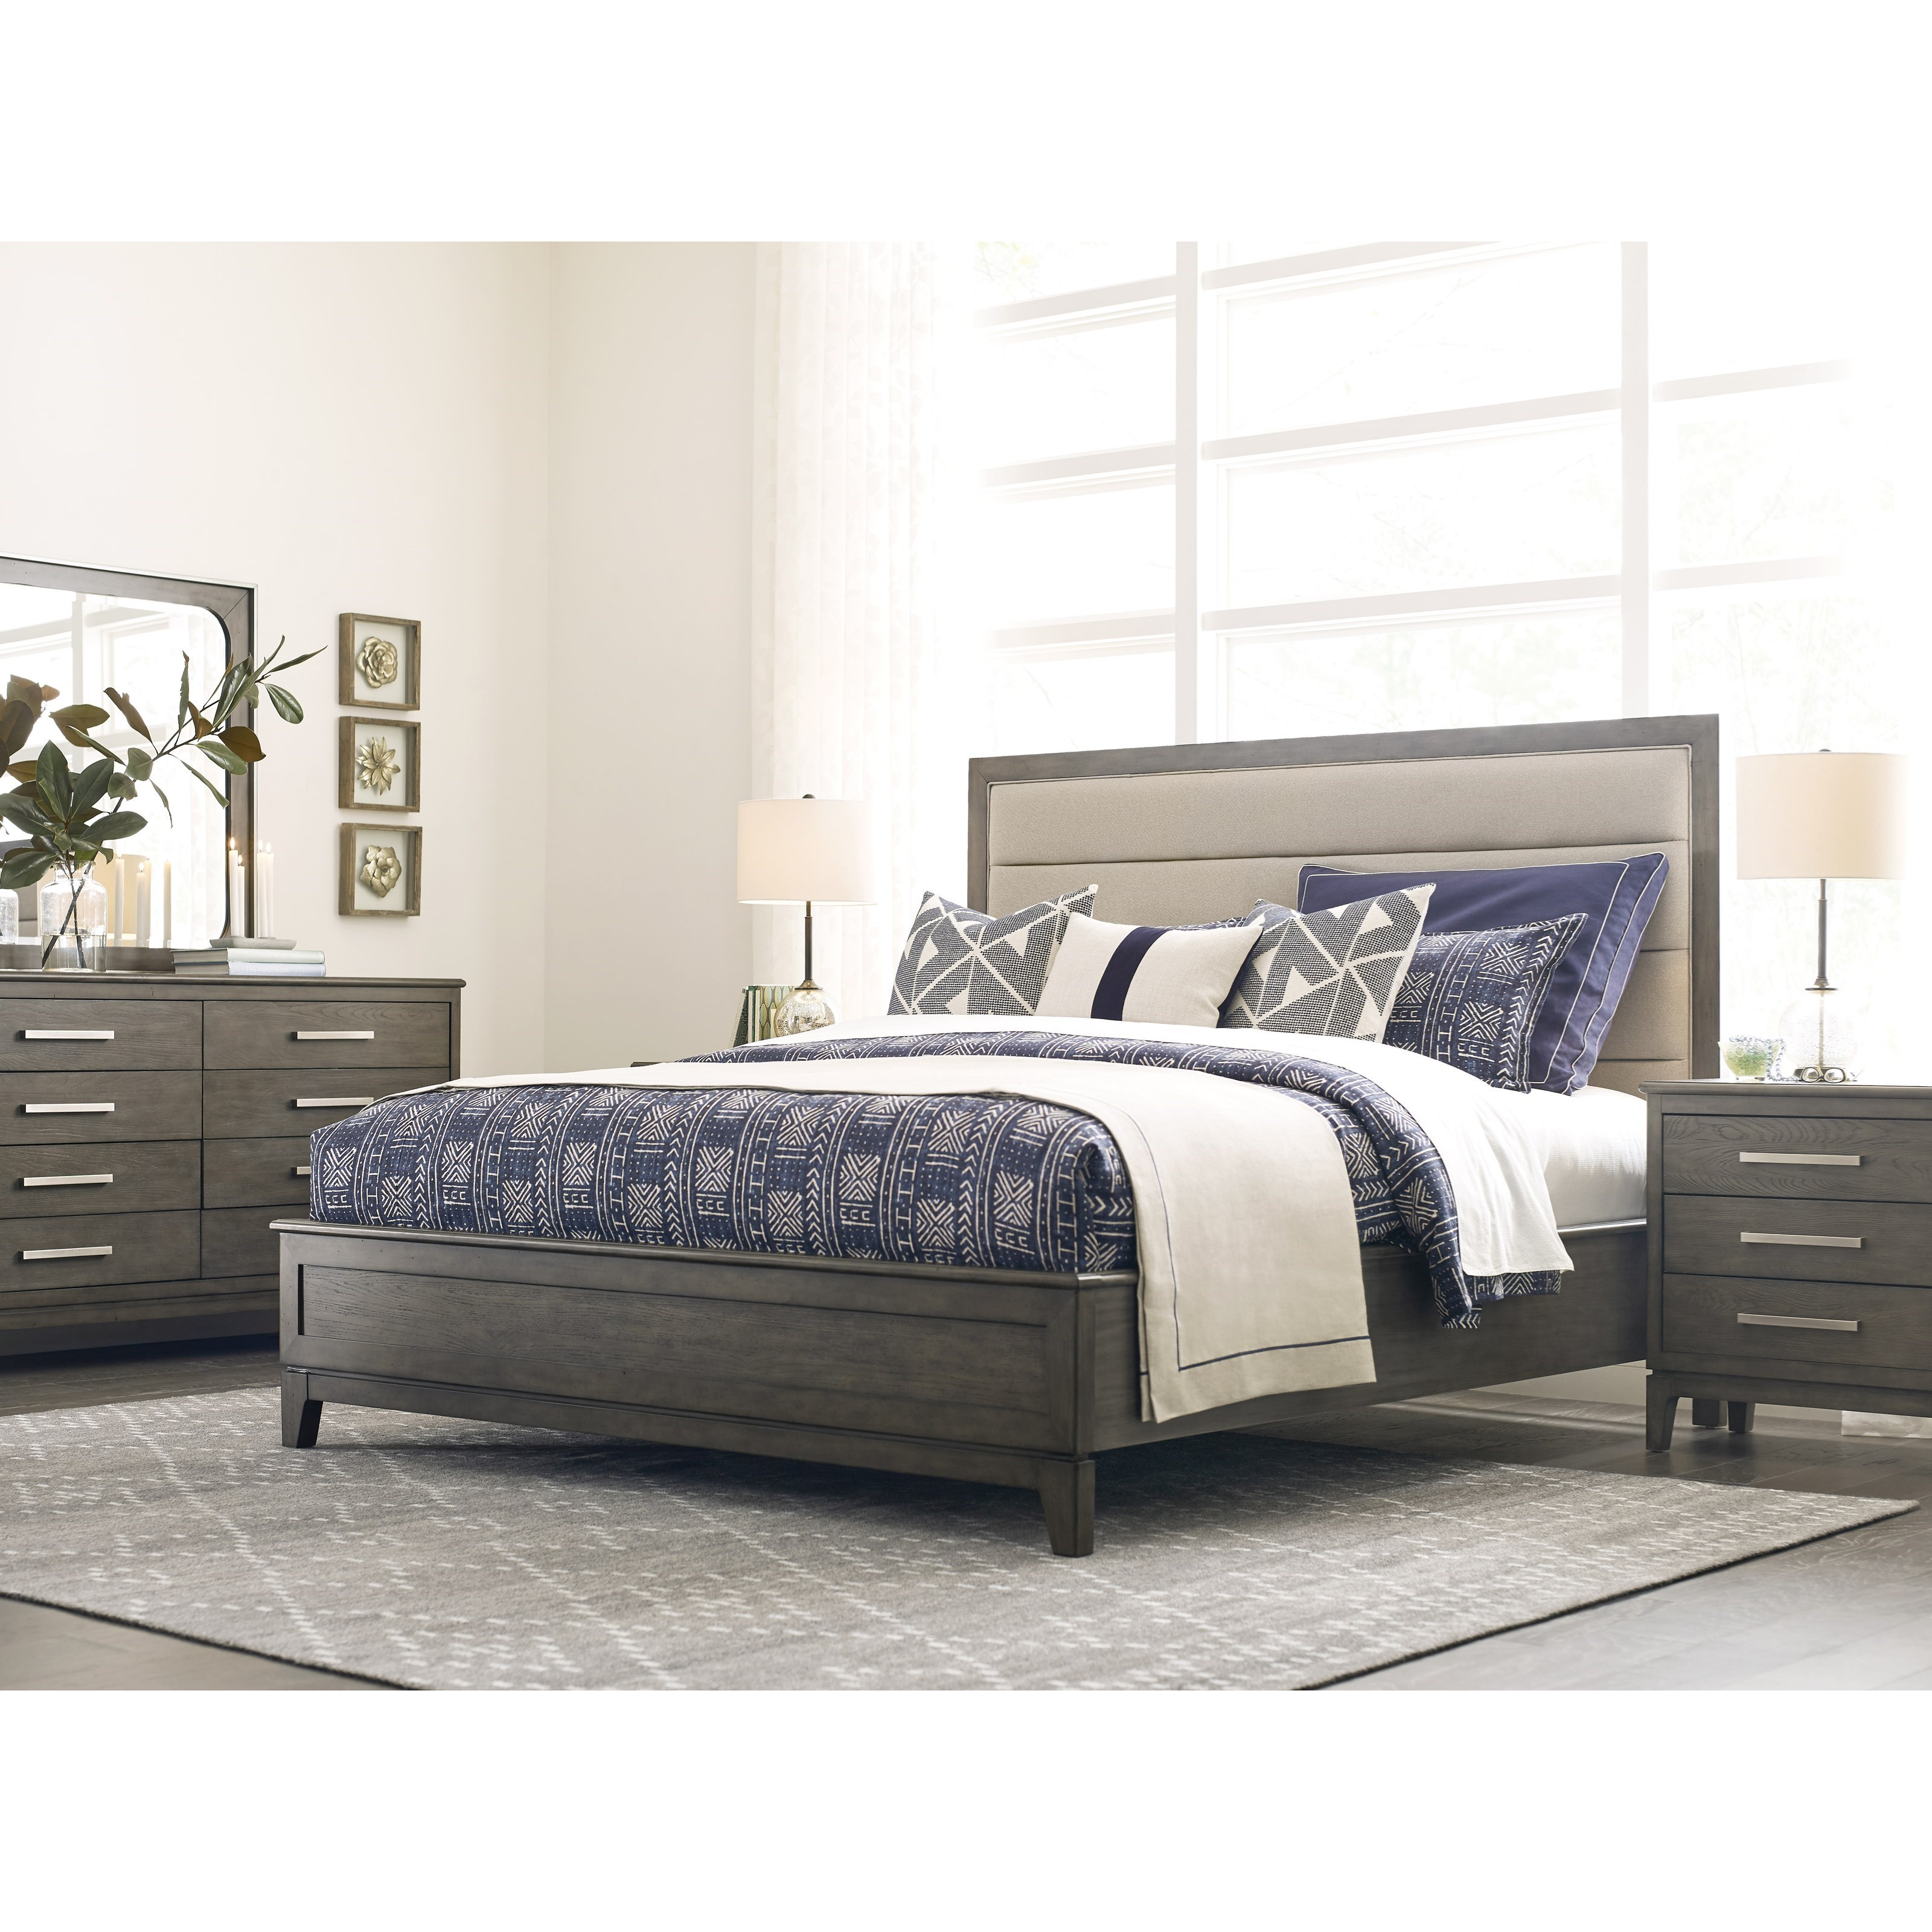 Cascade California King Bedroom Group by Kincaid Furniture at Johnny Janosik